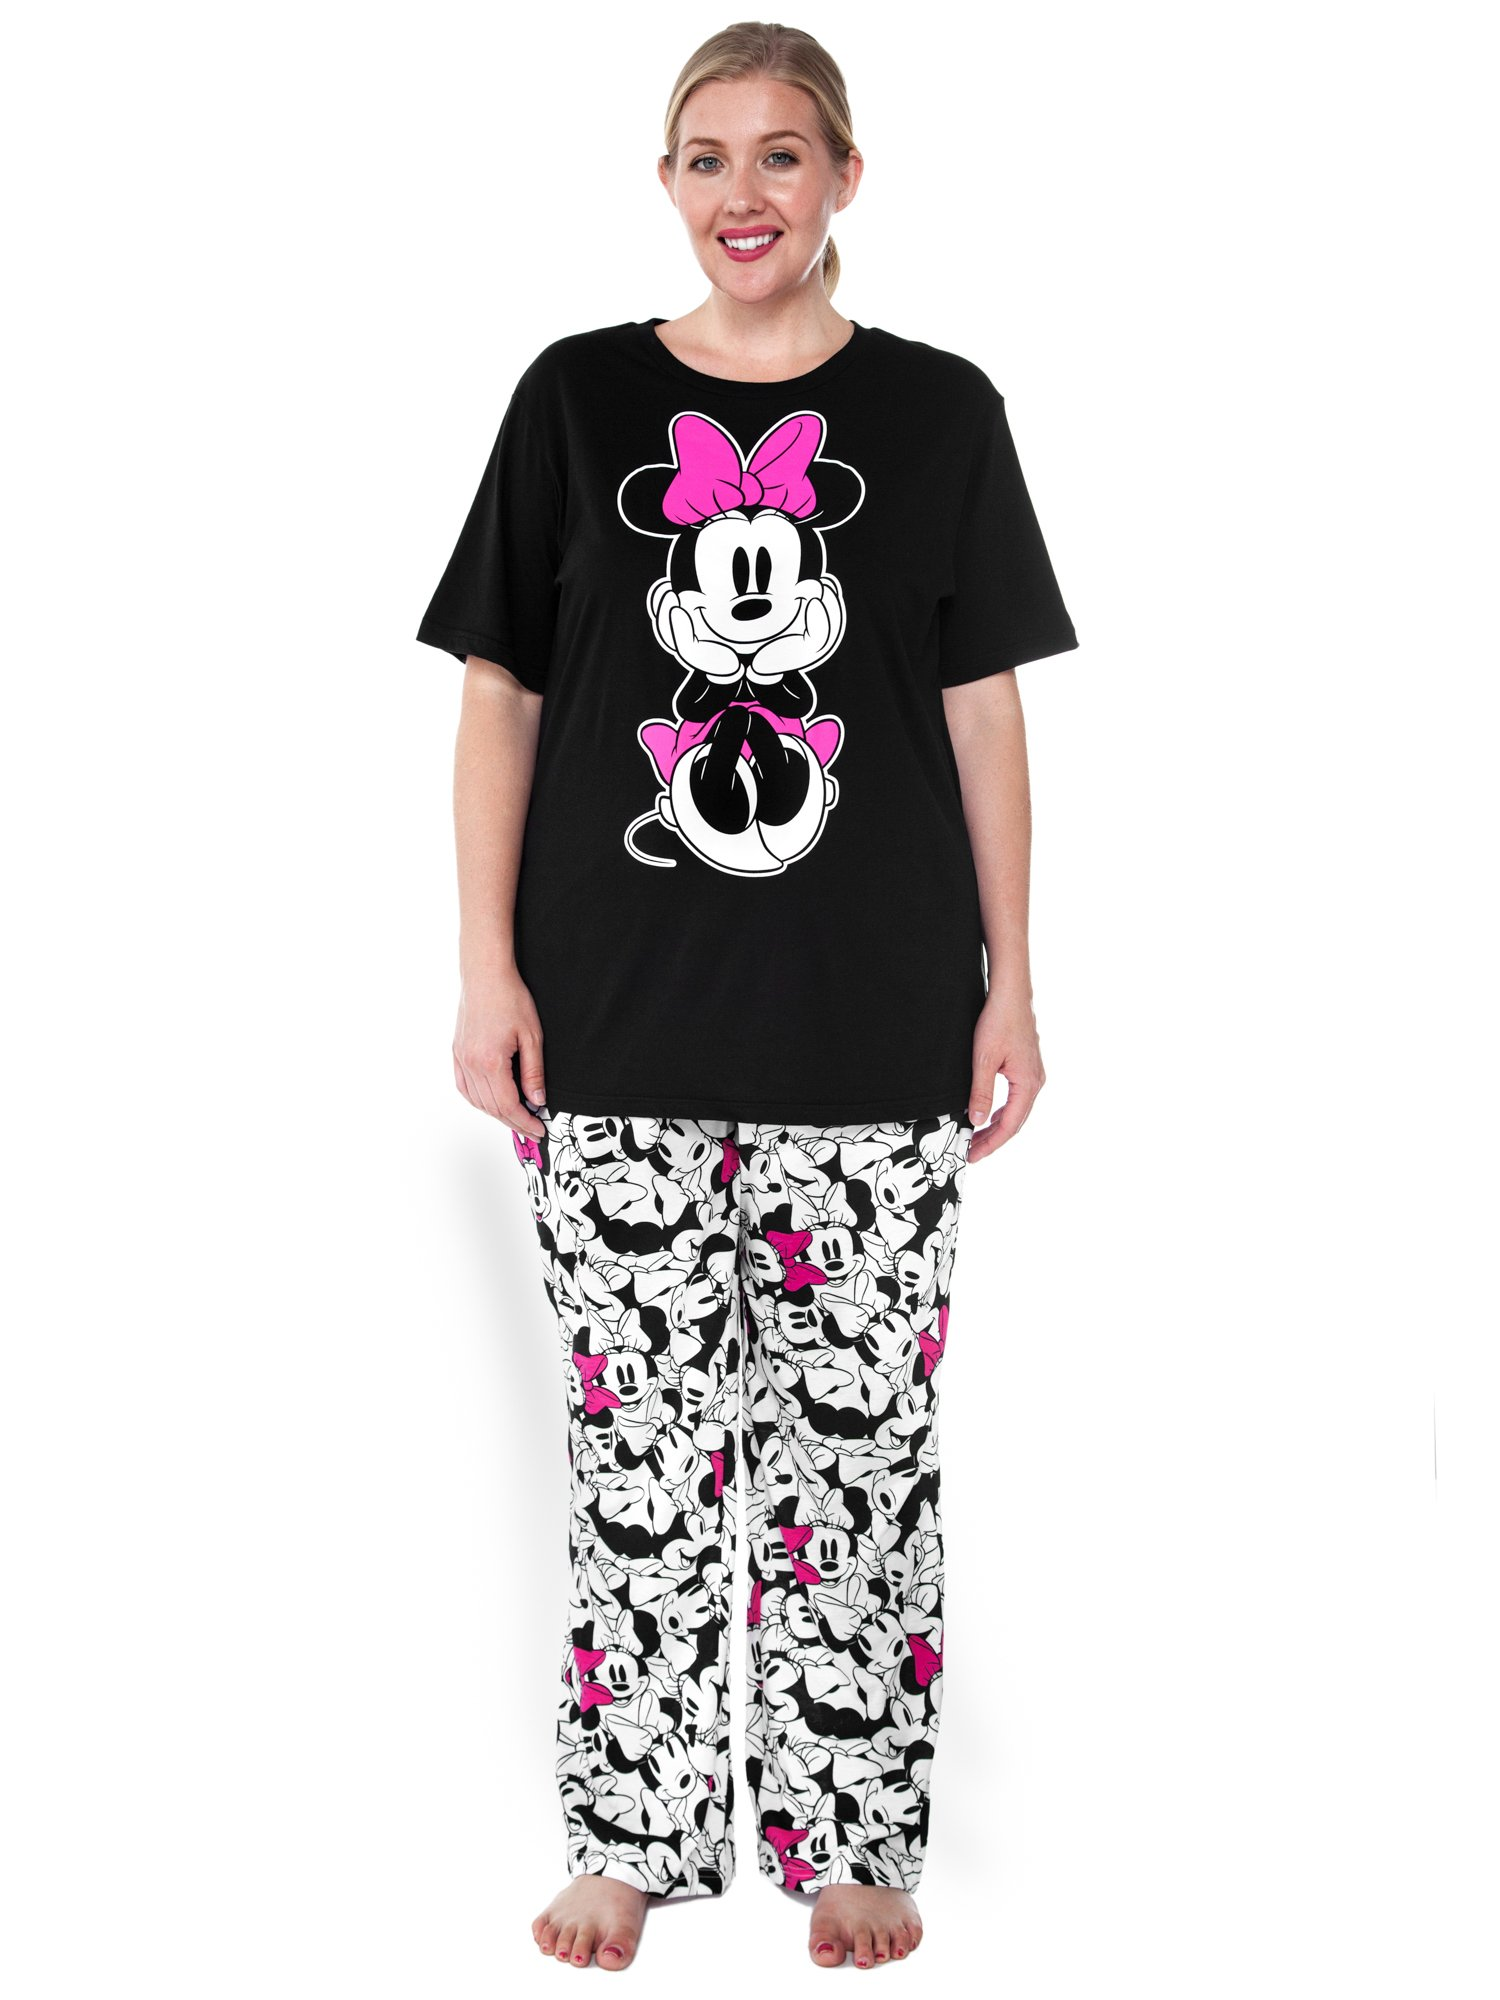 Disney Womens Plus Size Pajama Set Minnie Mouse T-Shirt & Pants PJs (Black, 2X)